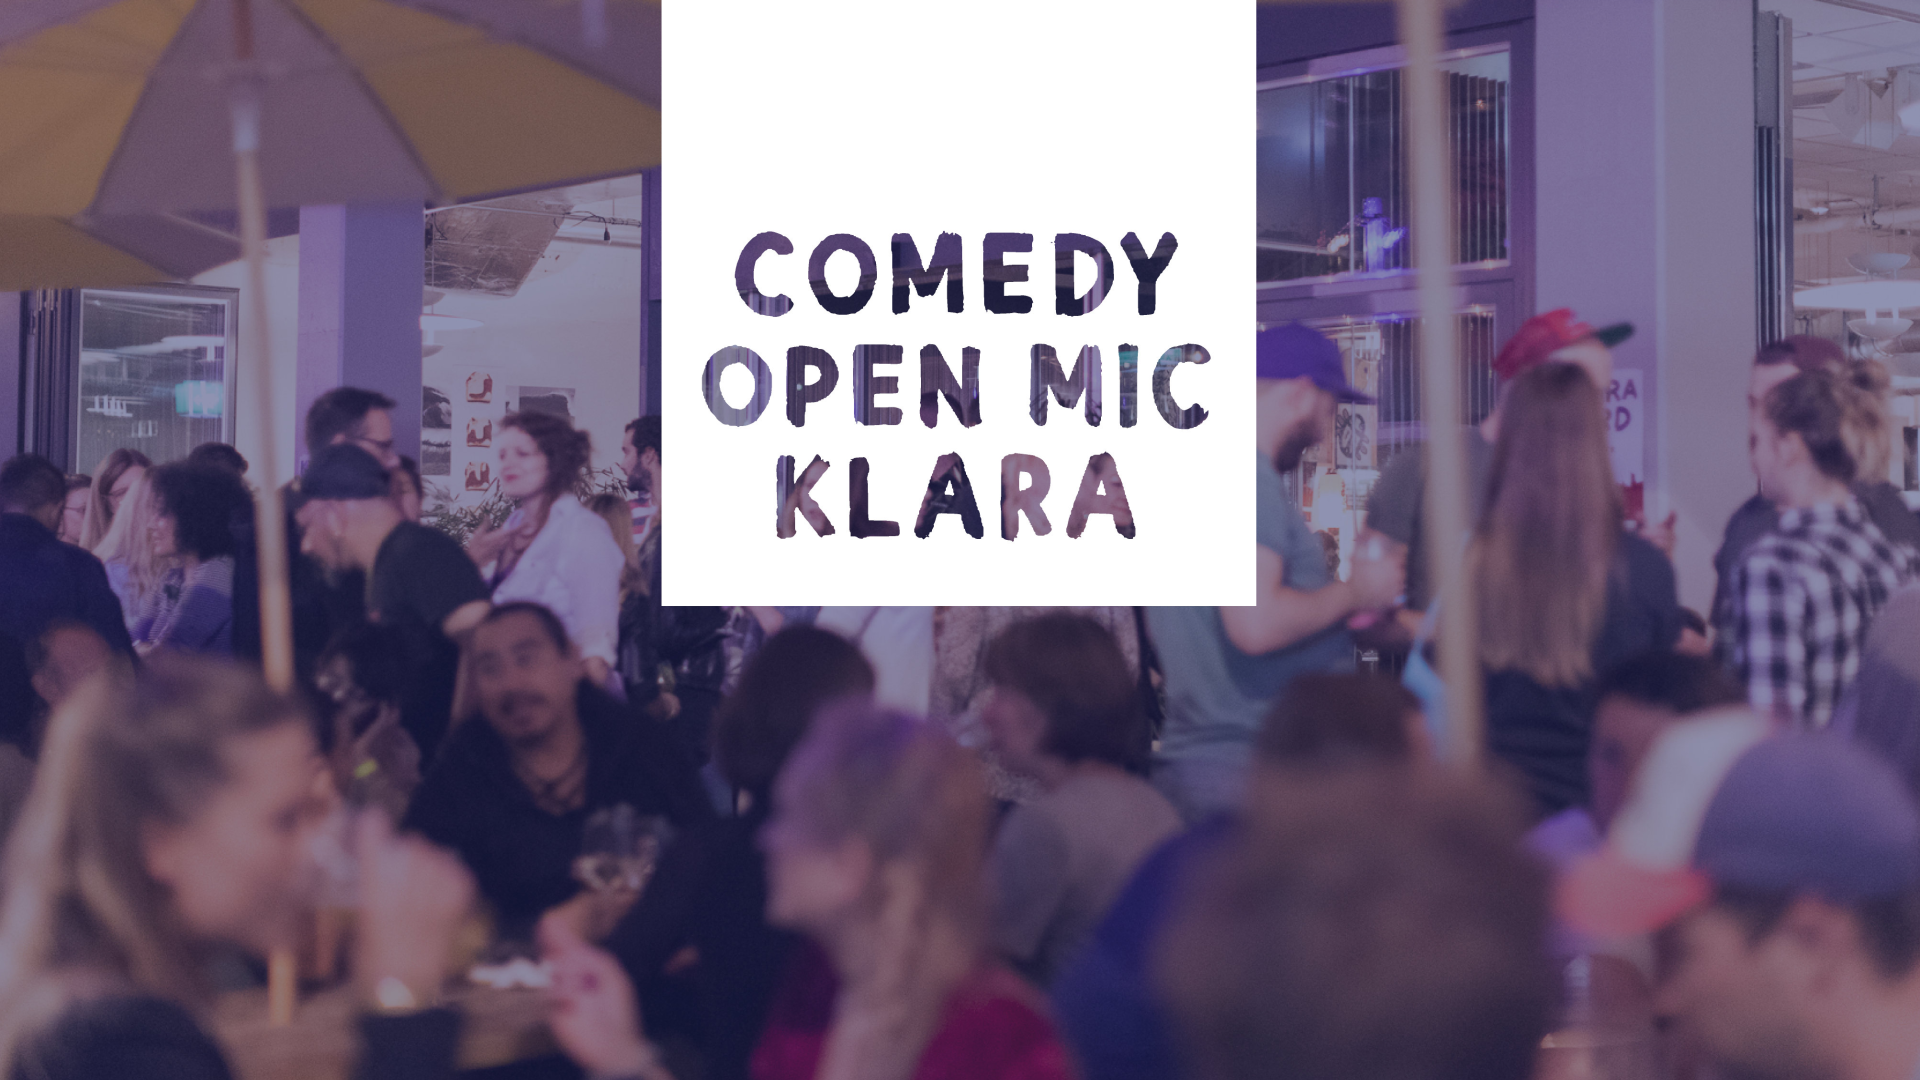 Comedy Open Mic at Klara event cover image